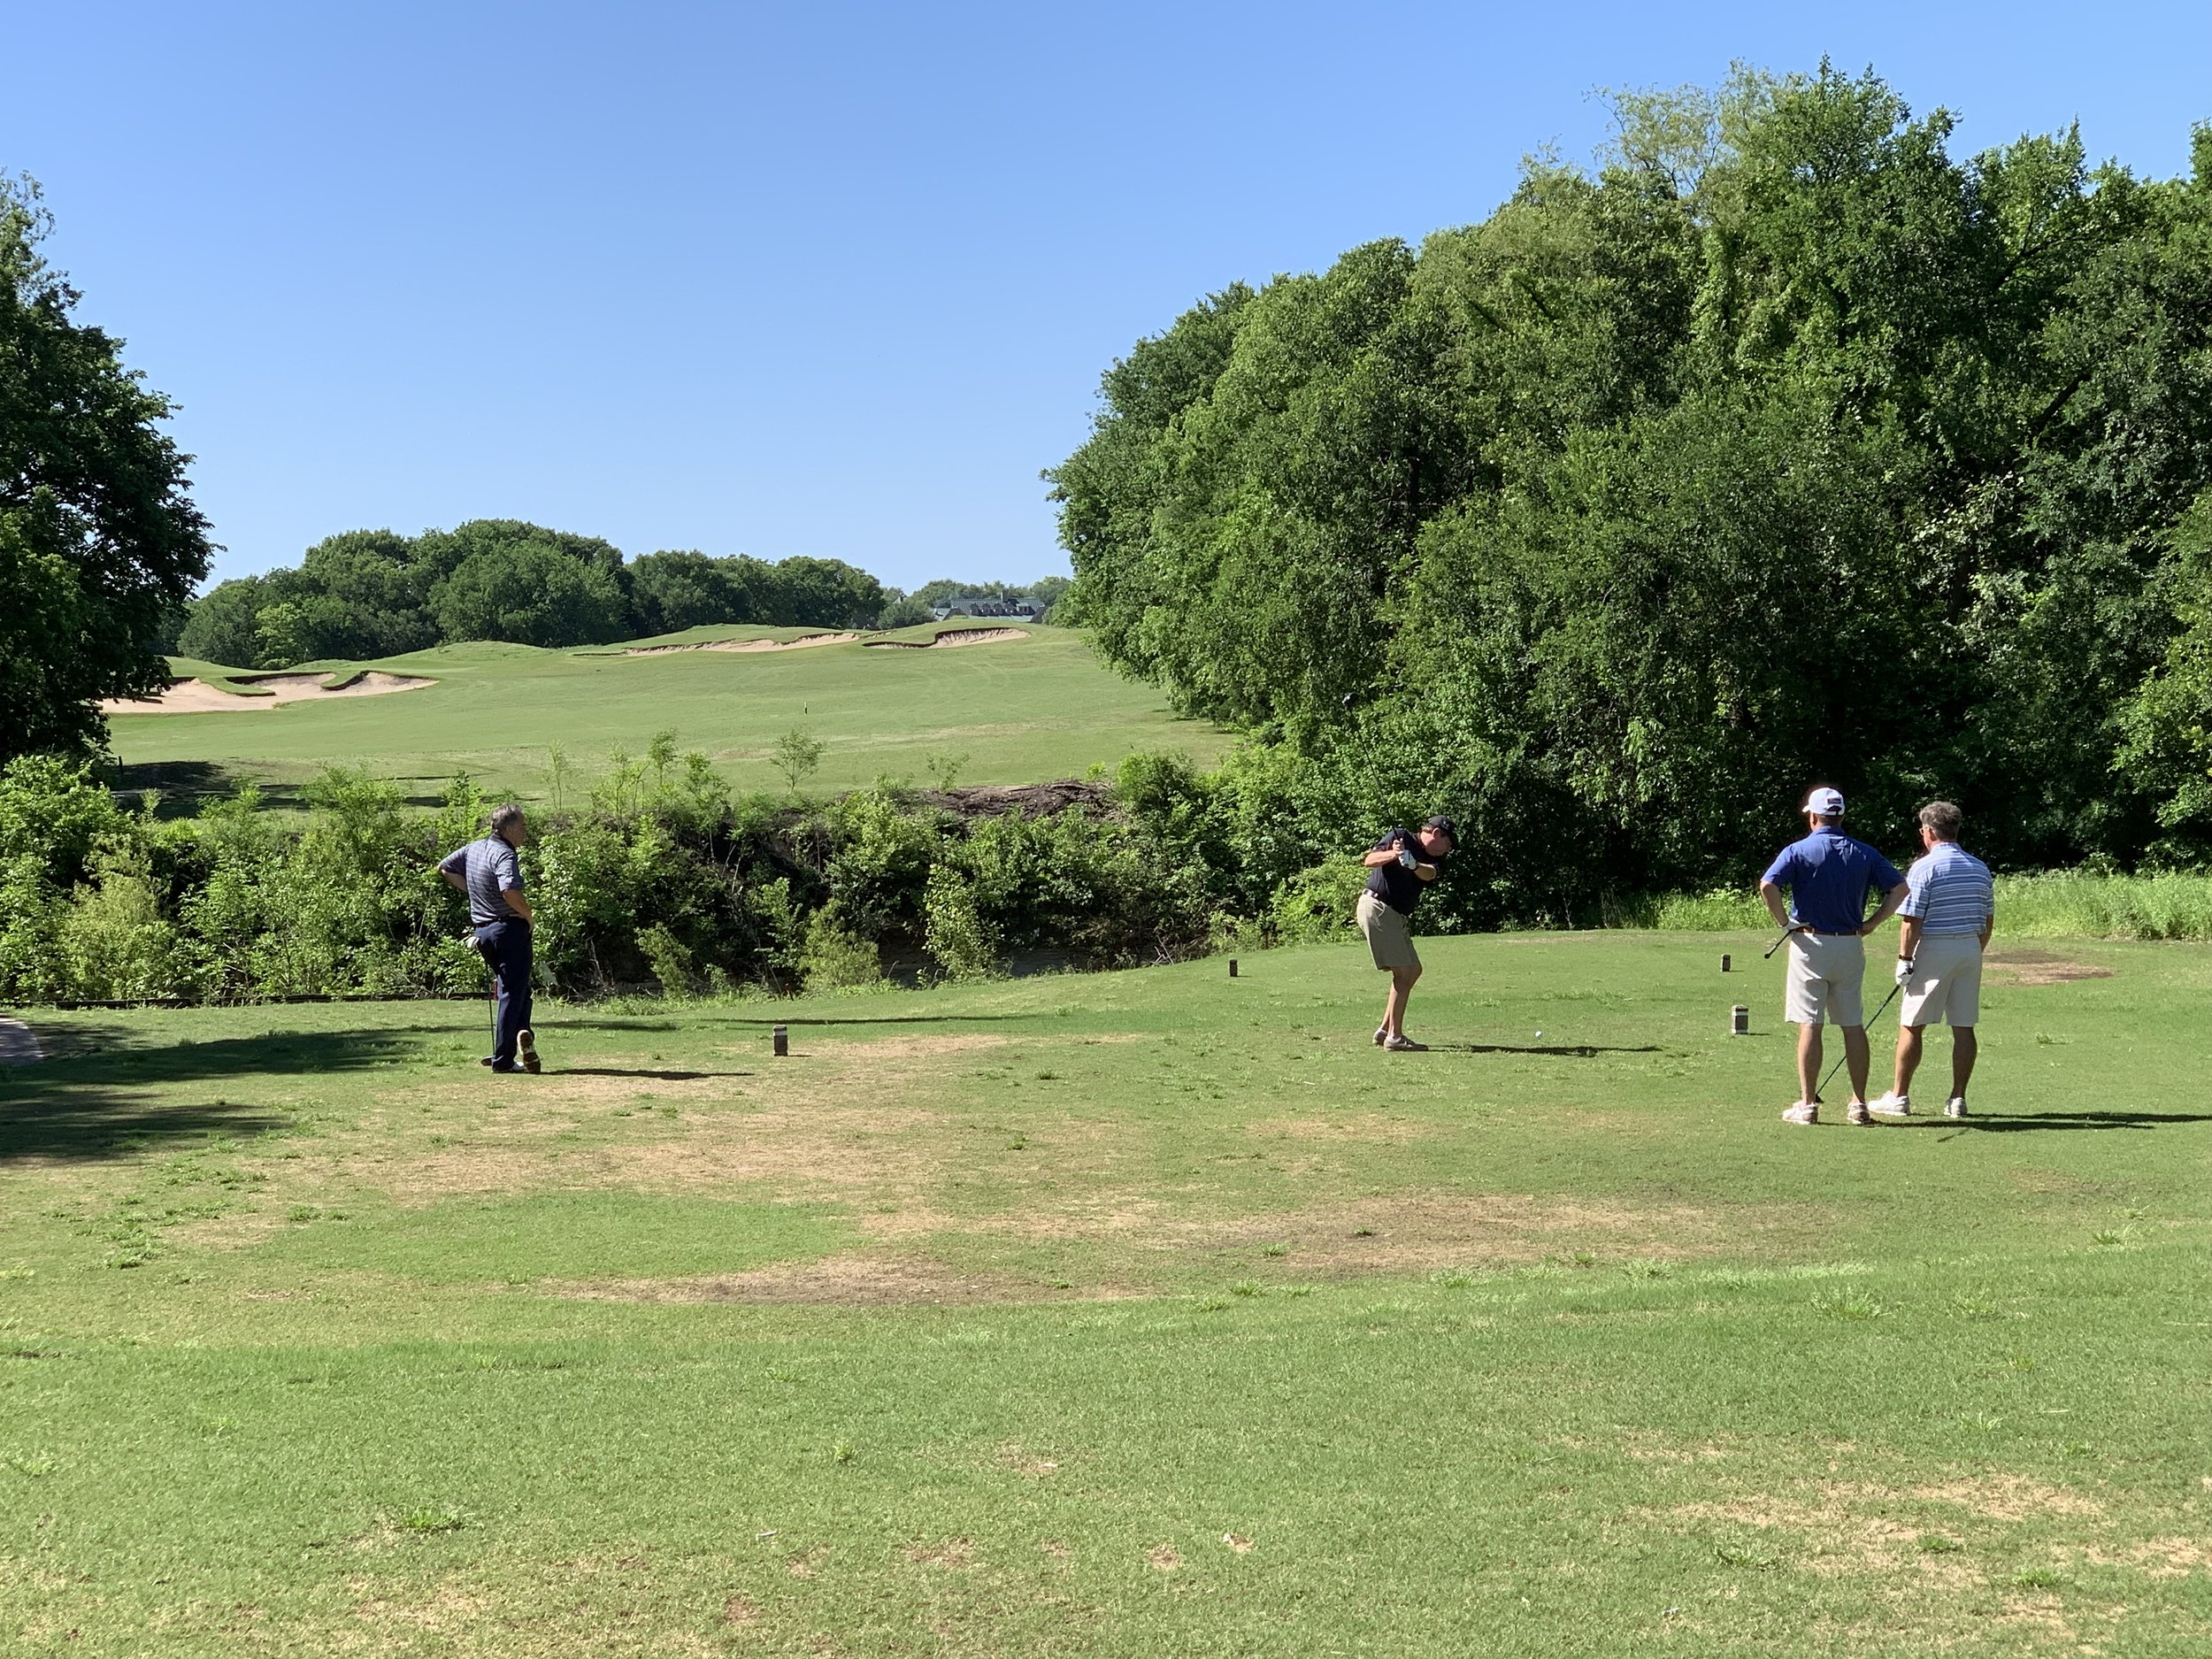 Photo Apr 26, 10 41 25 AM.jpg